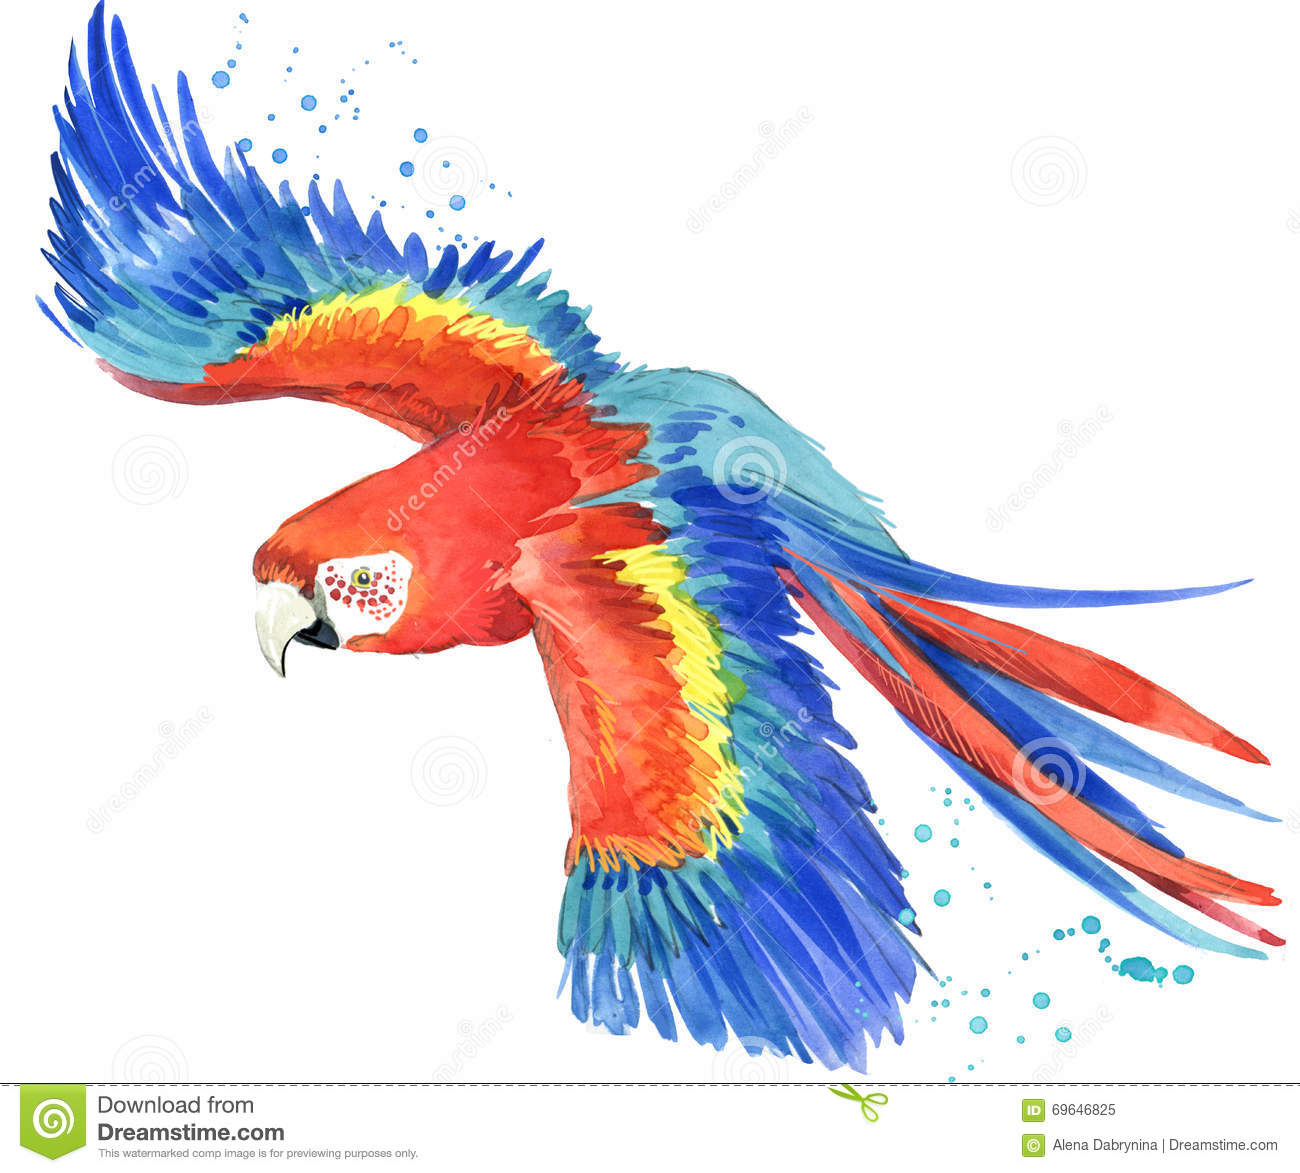 How To Draw Parrot  Draw Colorful Parrot  Learn Cartoon Drawings  Arts for kids  Digital Art